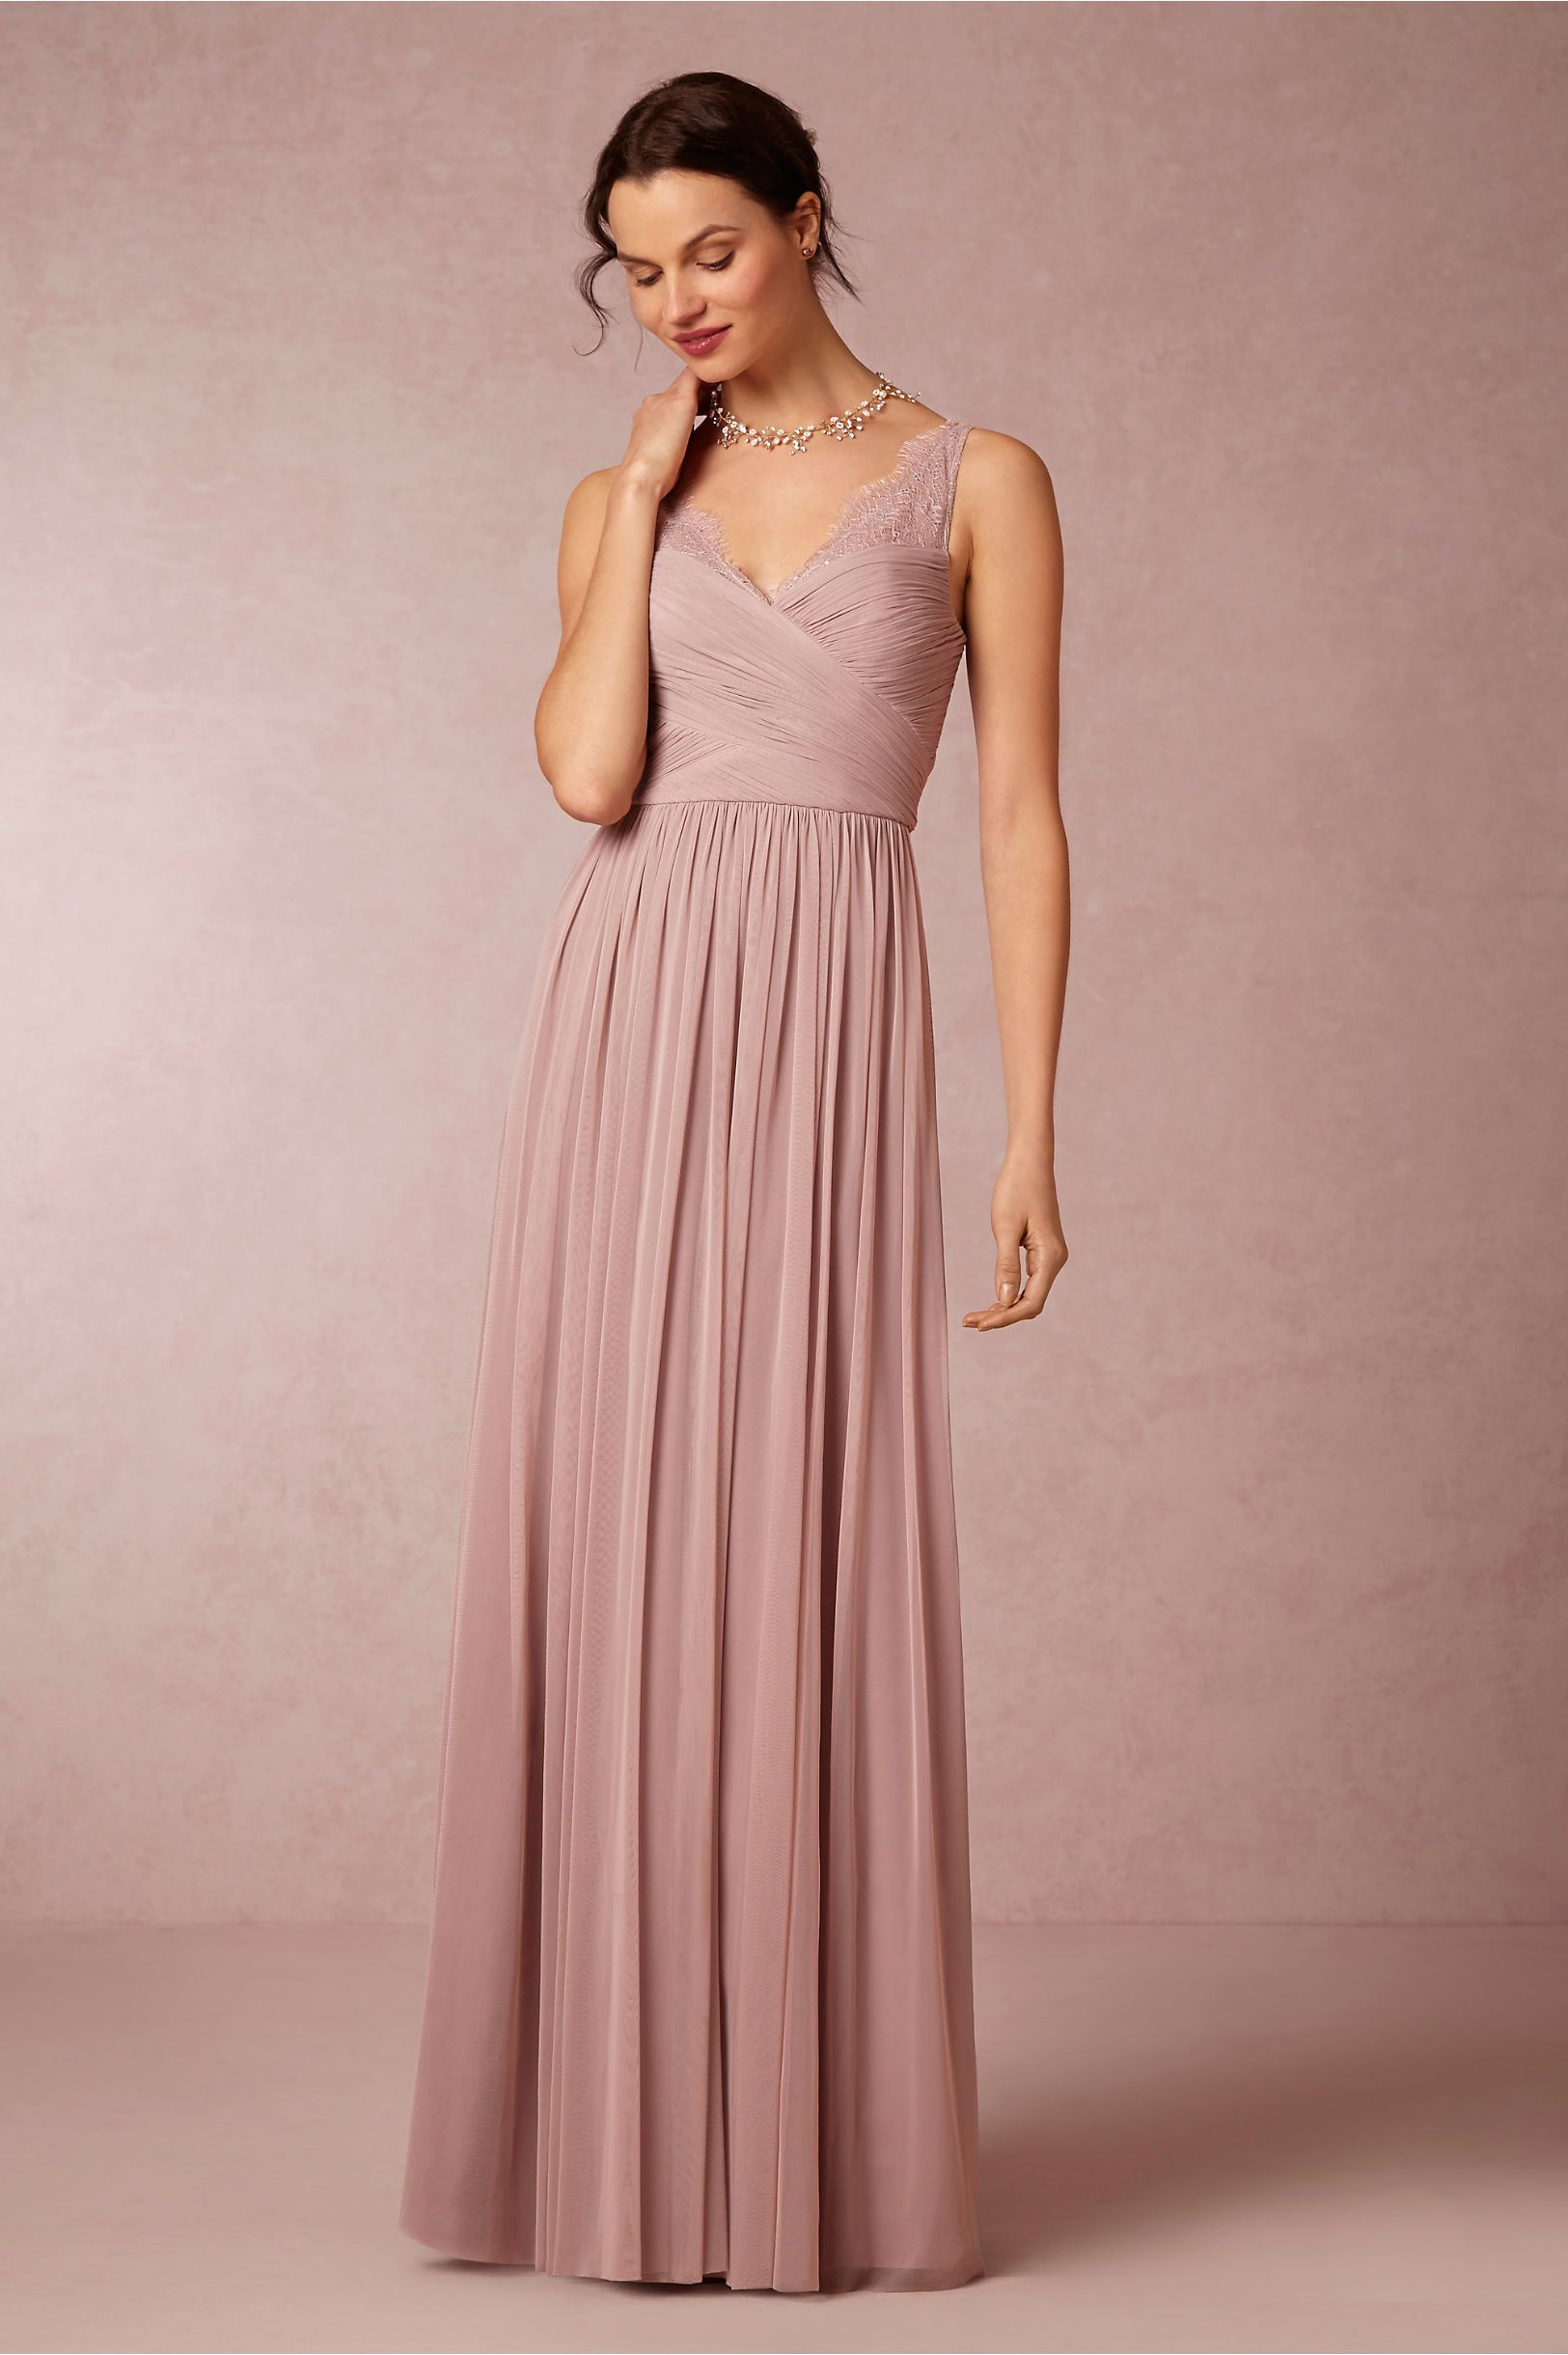 33892688_055_a 1,625×2,440 pixeles | Lavender bridesmaid dress ...